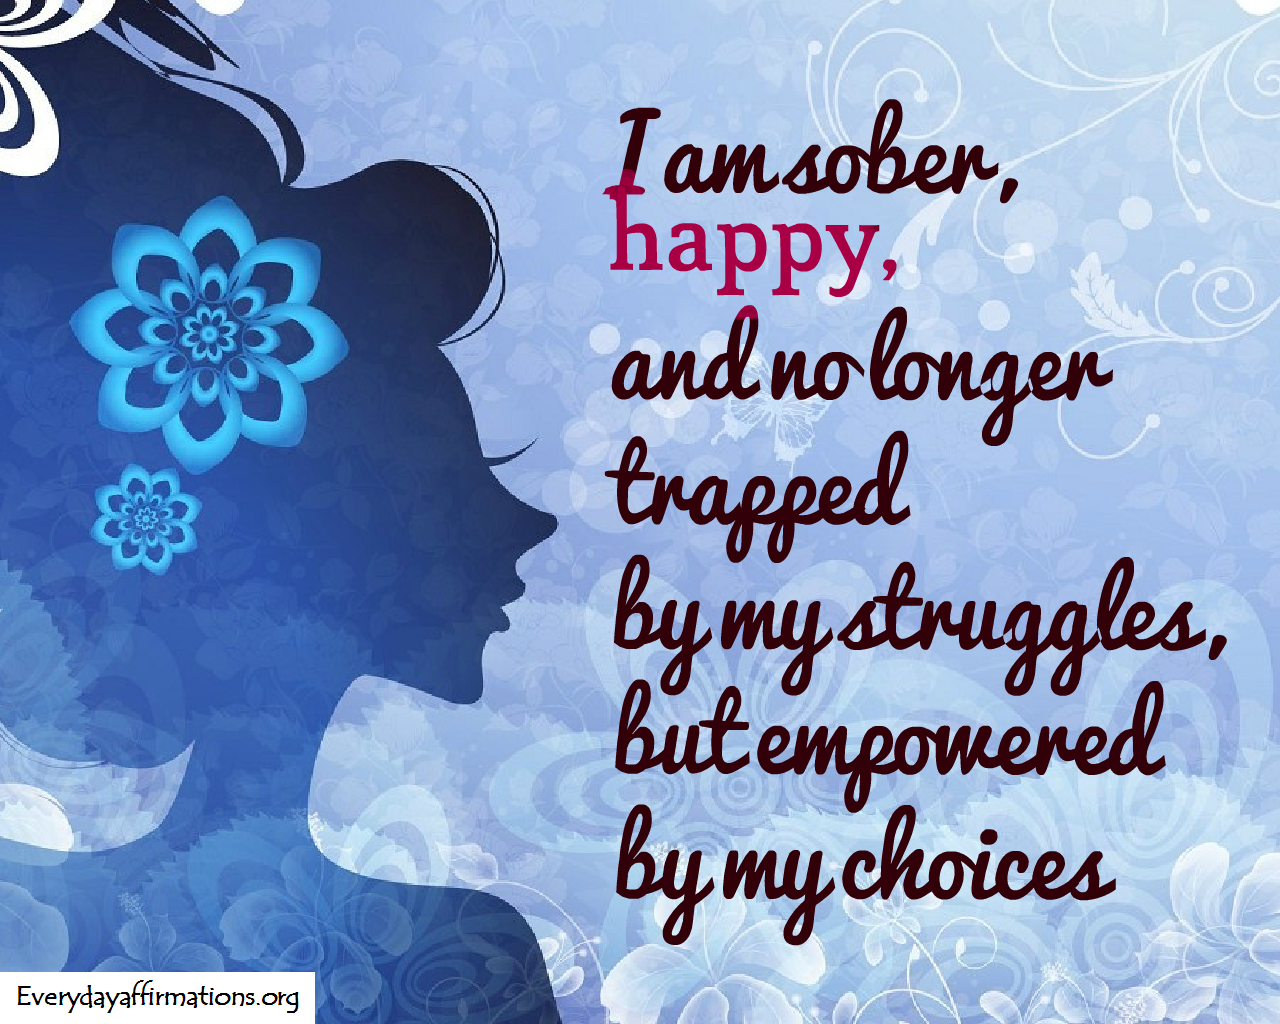 Quotes For Your Wallpaper 46 Affirmations For Women To Assist Through Meaningful